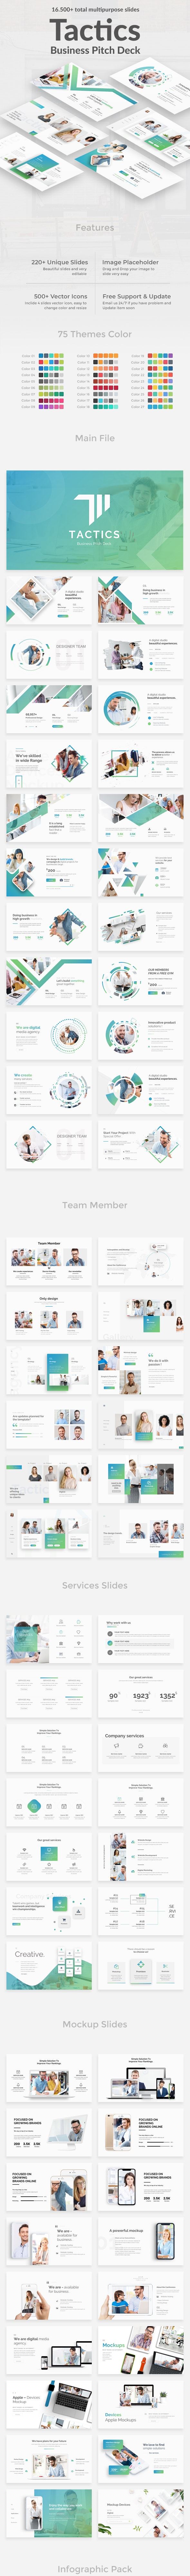 Business Tactics Pitch Deck Powerpoint Template - Business PowerPoint Templates